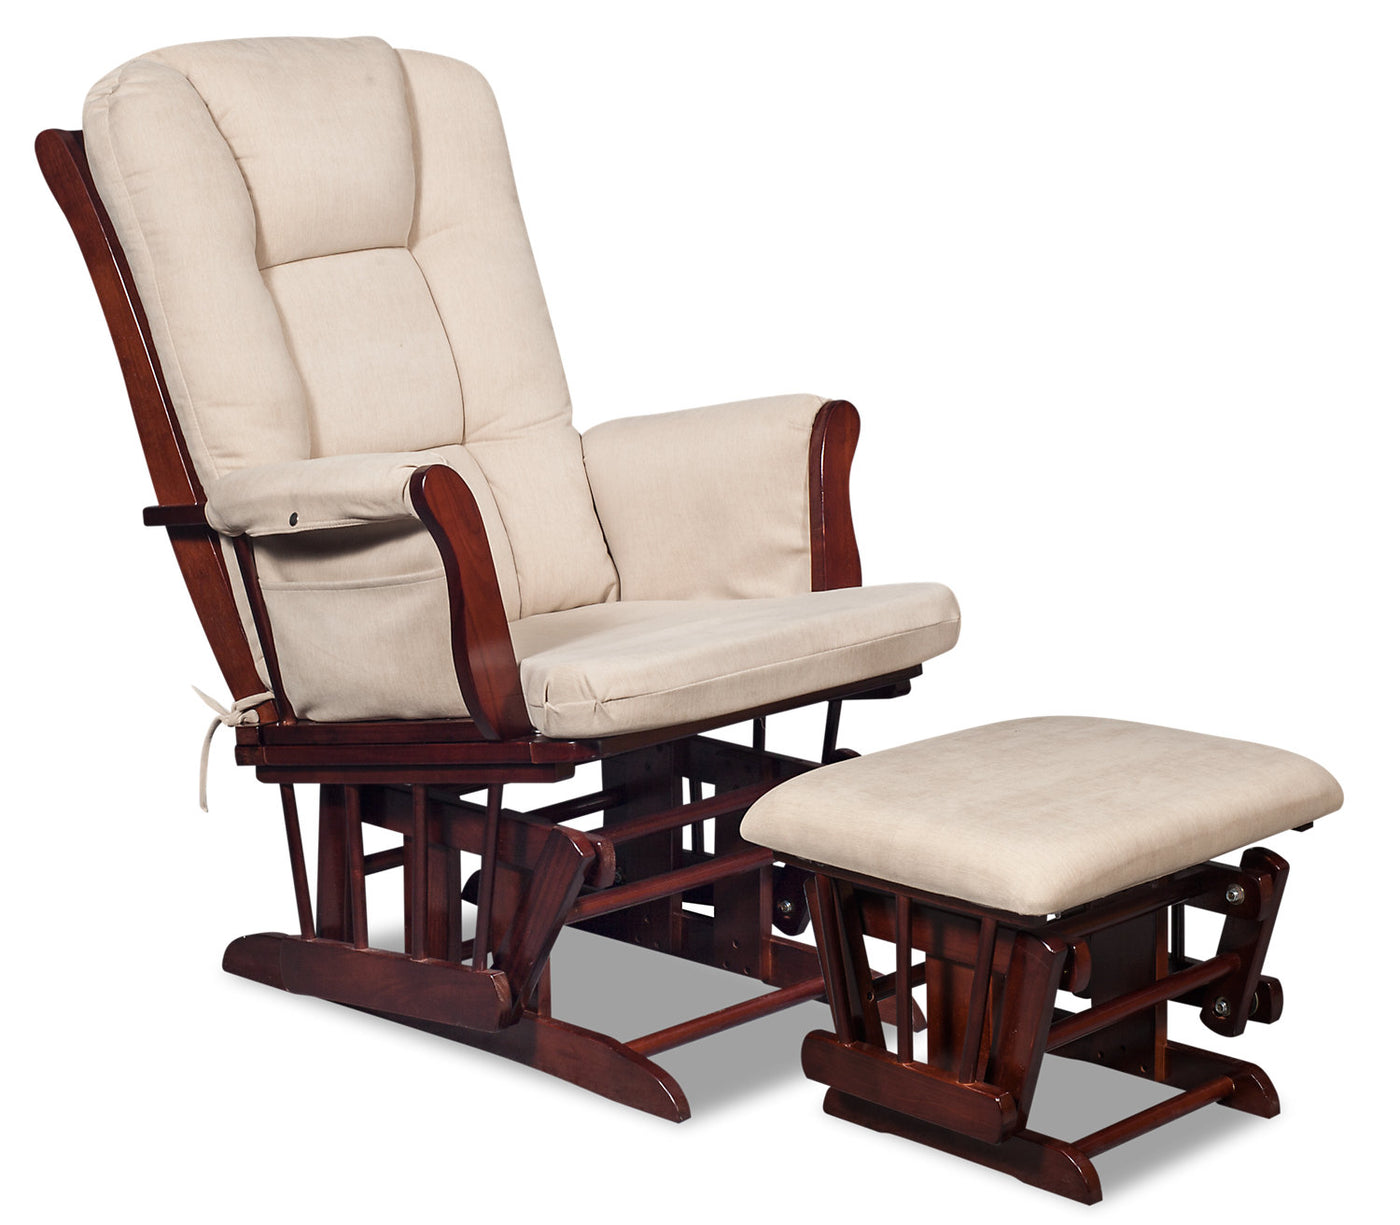 Anita Microsuede Gliding Chair With Ottoman Espresso And Beige